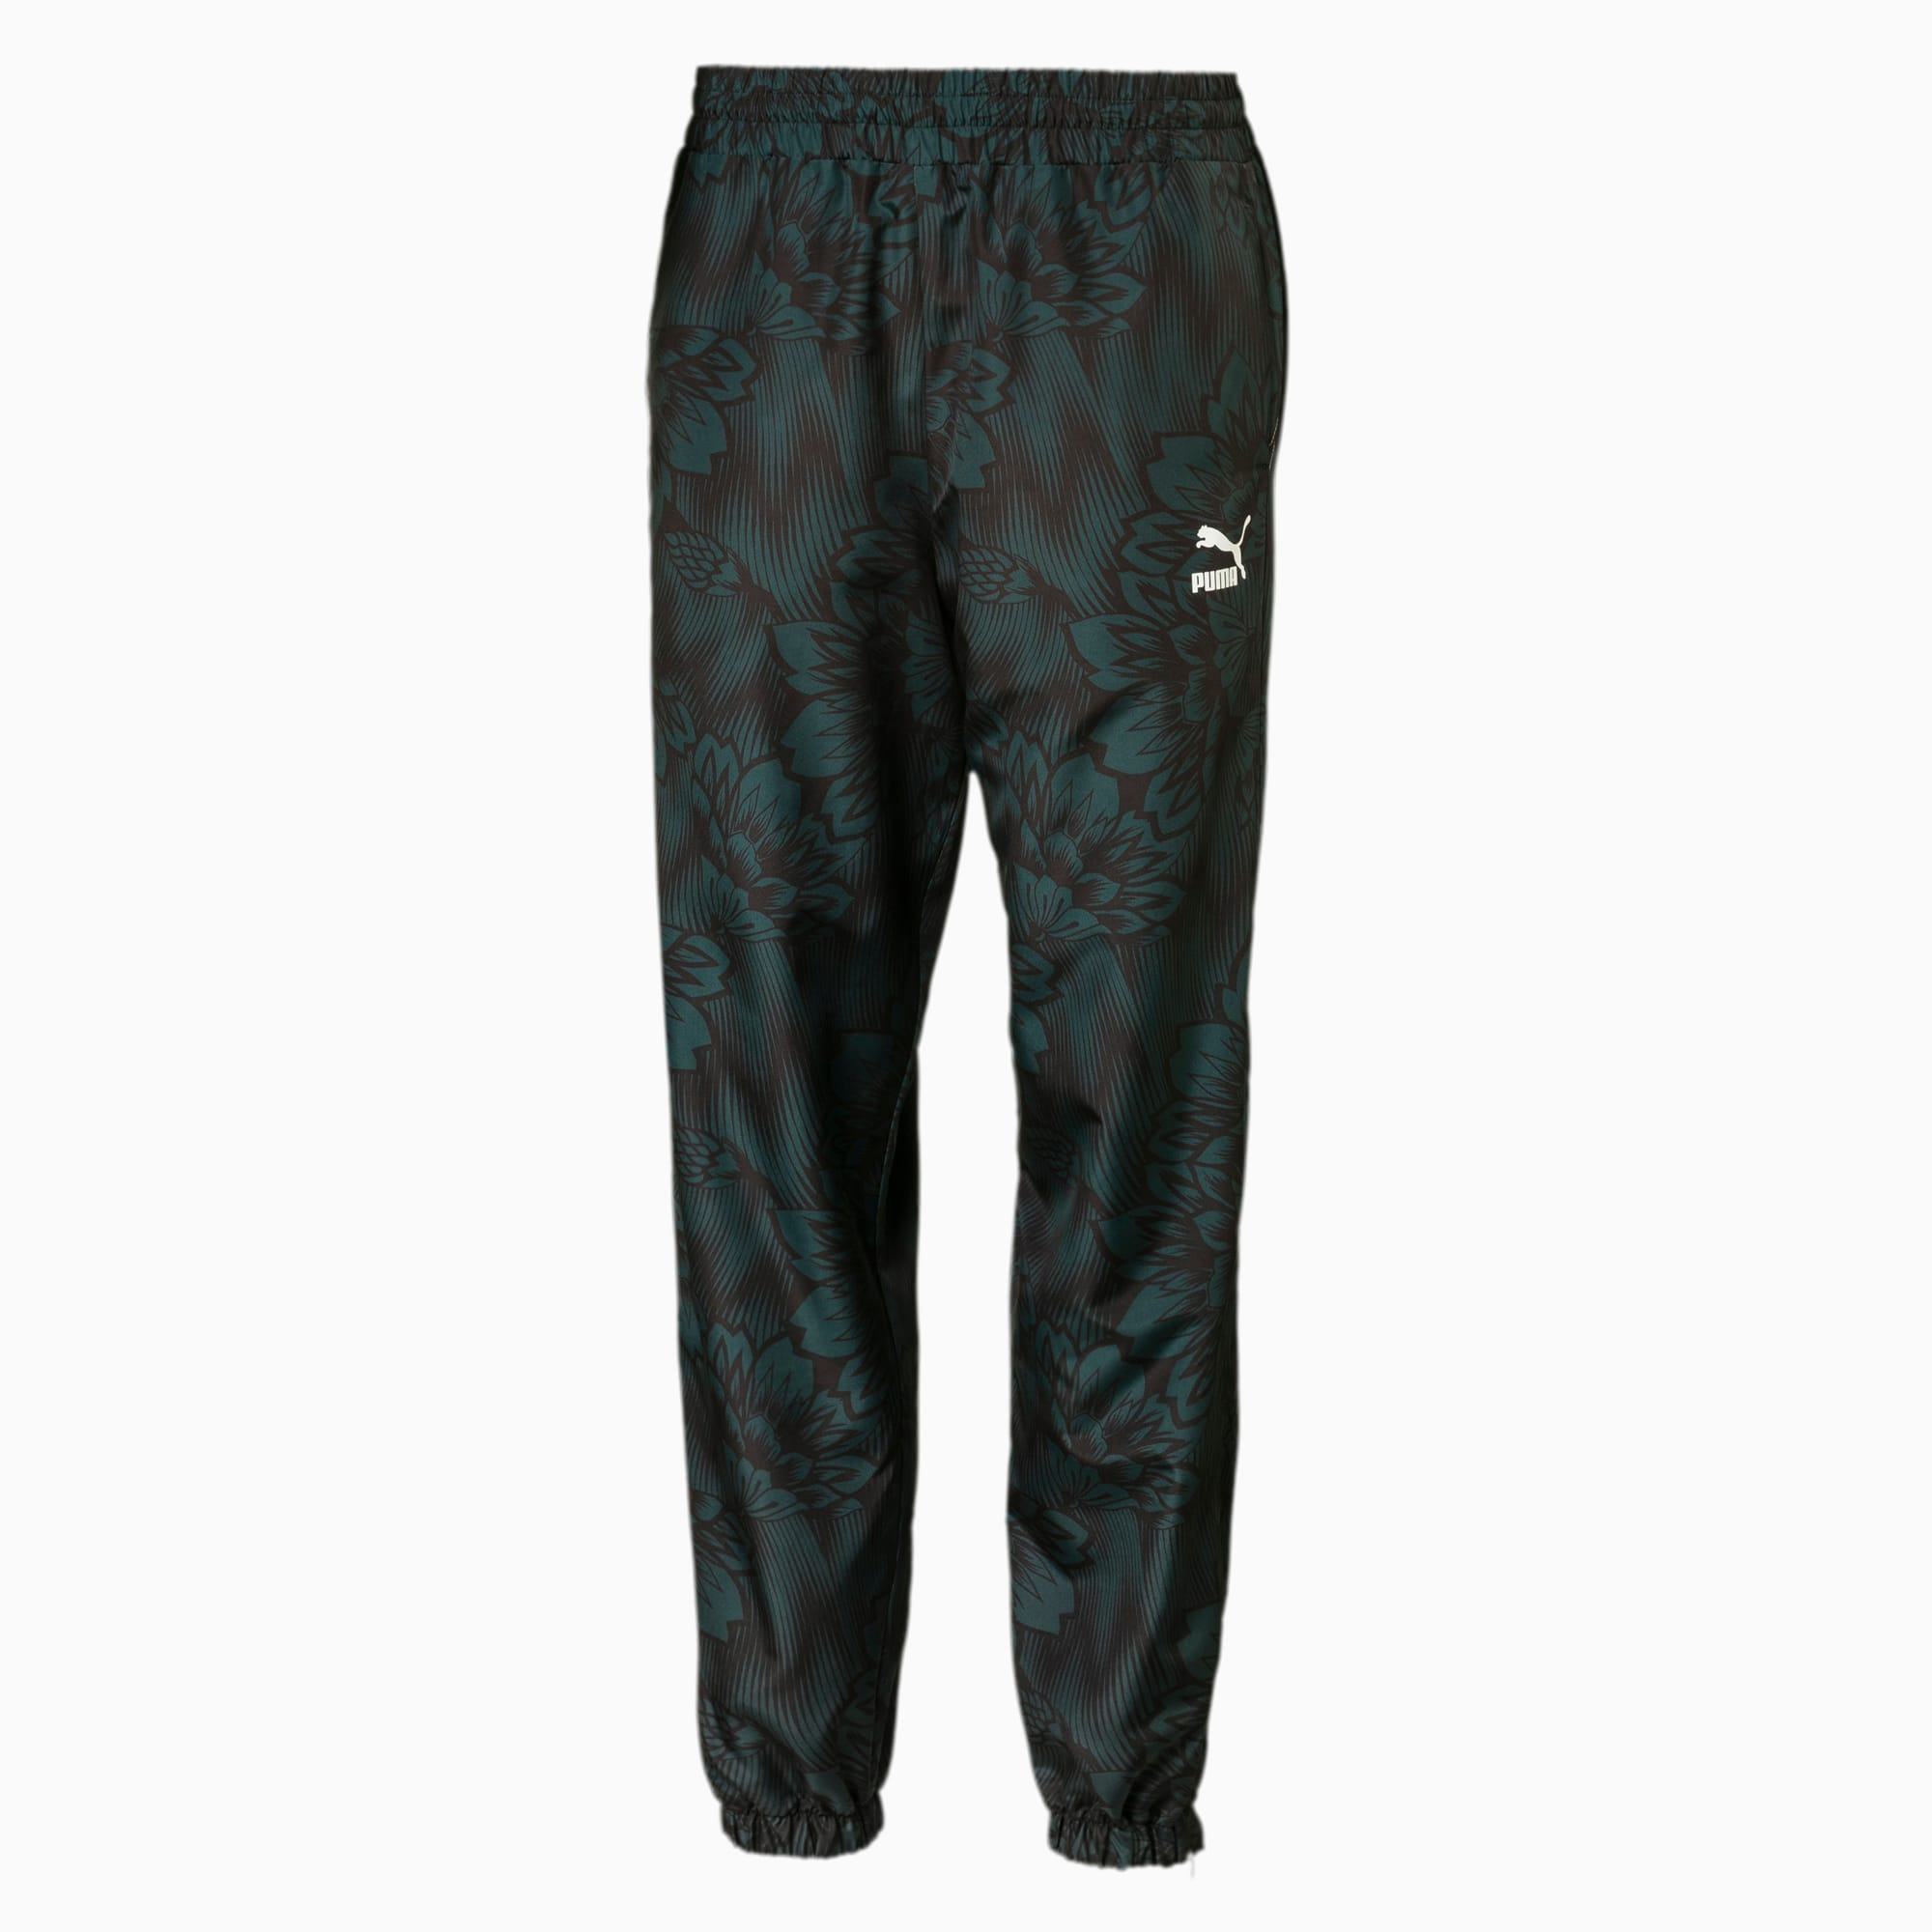 Empower Soft Woven Women's Track Pants